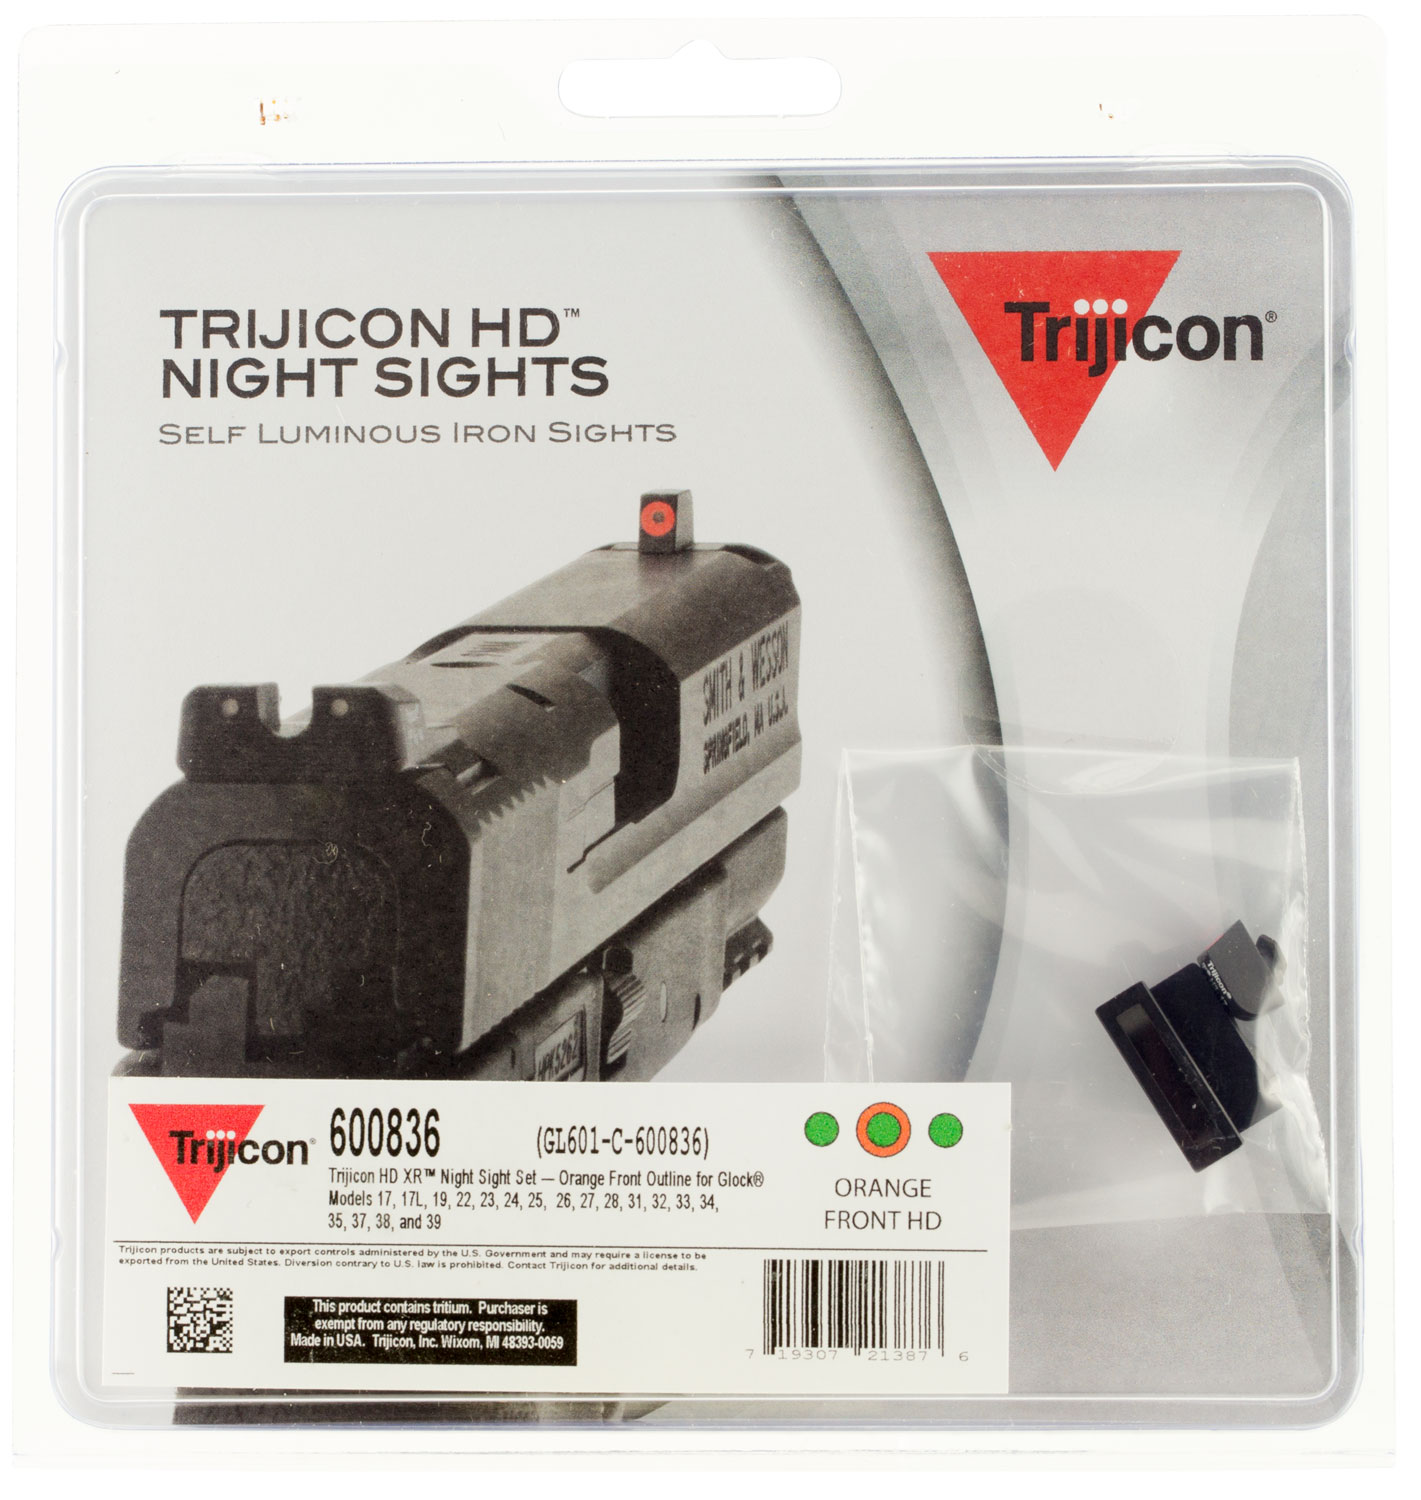 Trijicon 600836 HD Night Sights Glock 17/17L/19/22-28/31-35/37-39  Orange